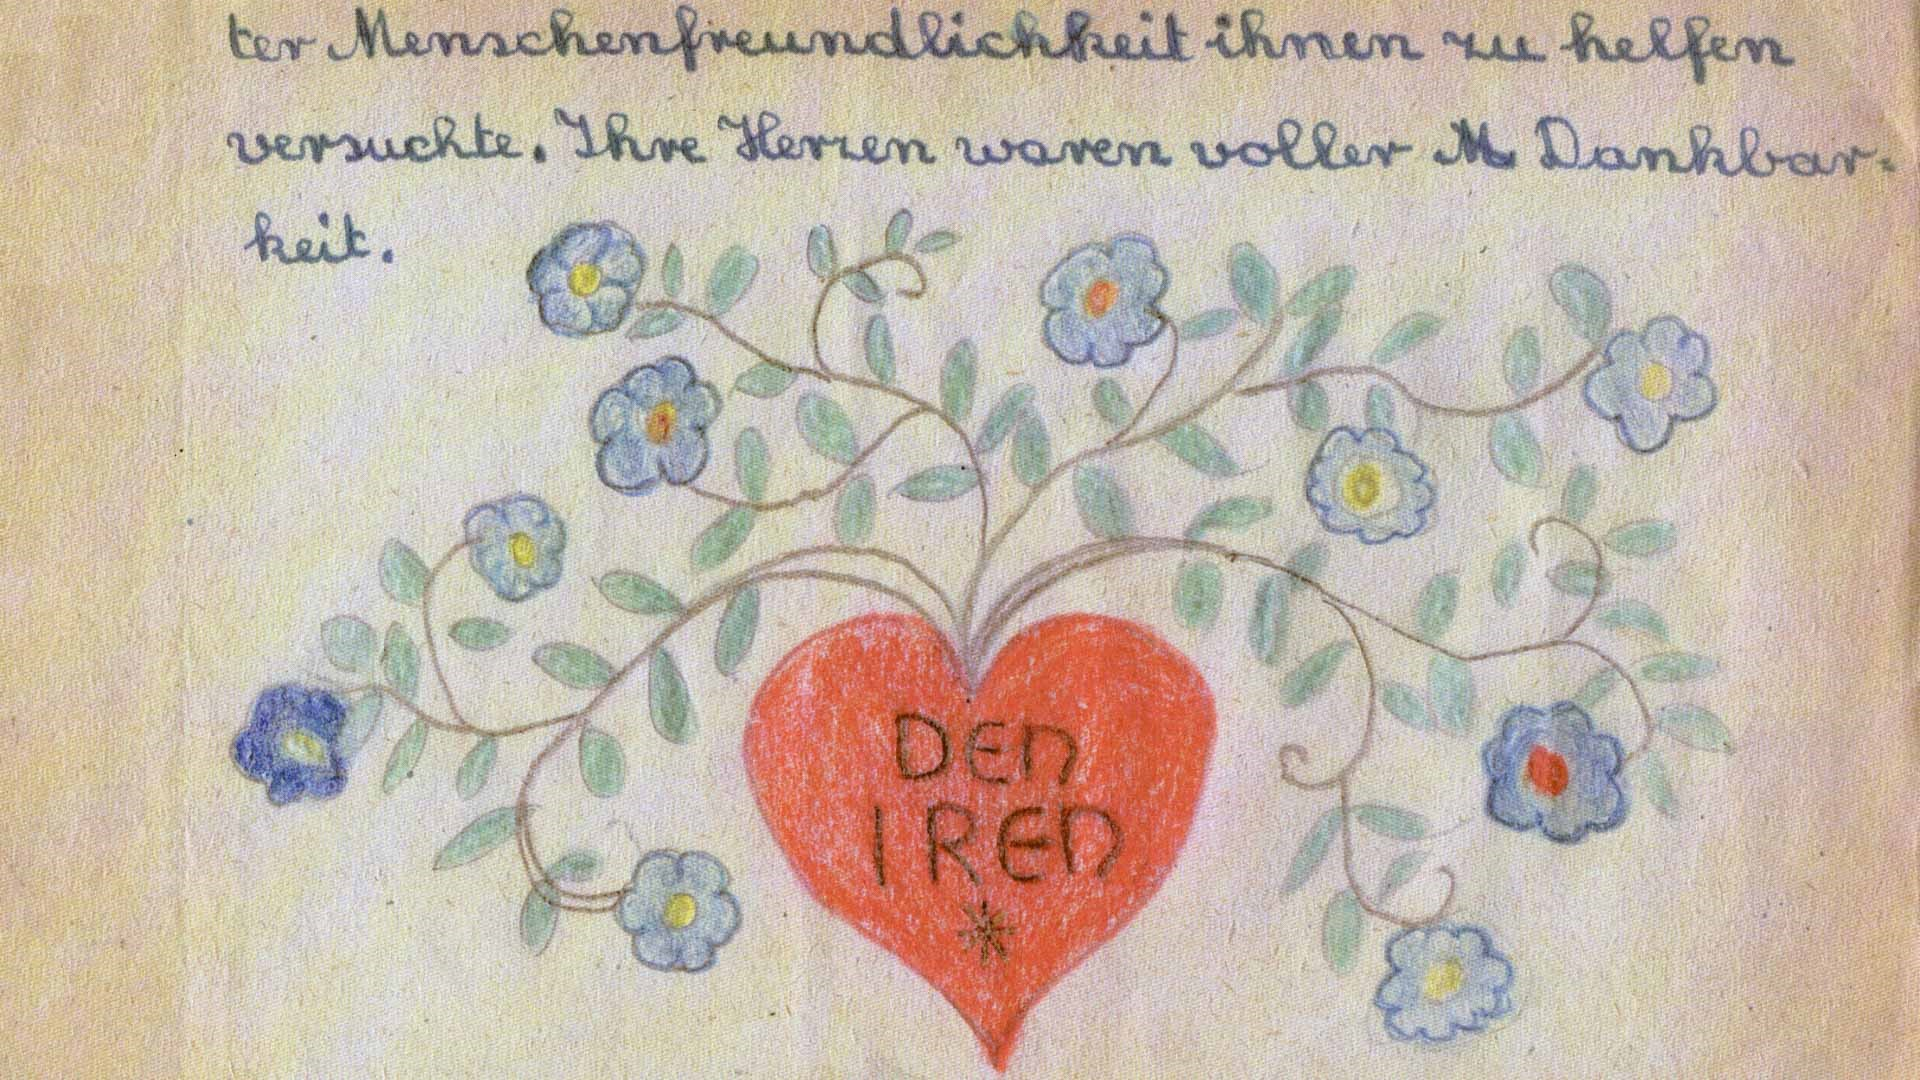 1946, Dedication Letter, Page 85, Danke-Buch Thank You Book for Irish Food Aid, Saarbucken, Germany © Tony O Herlihy